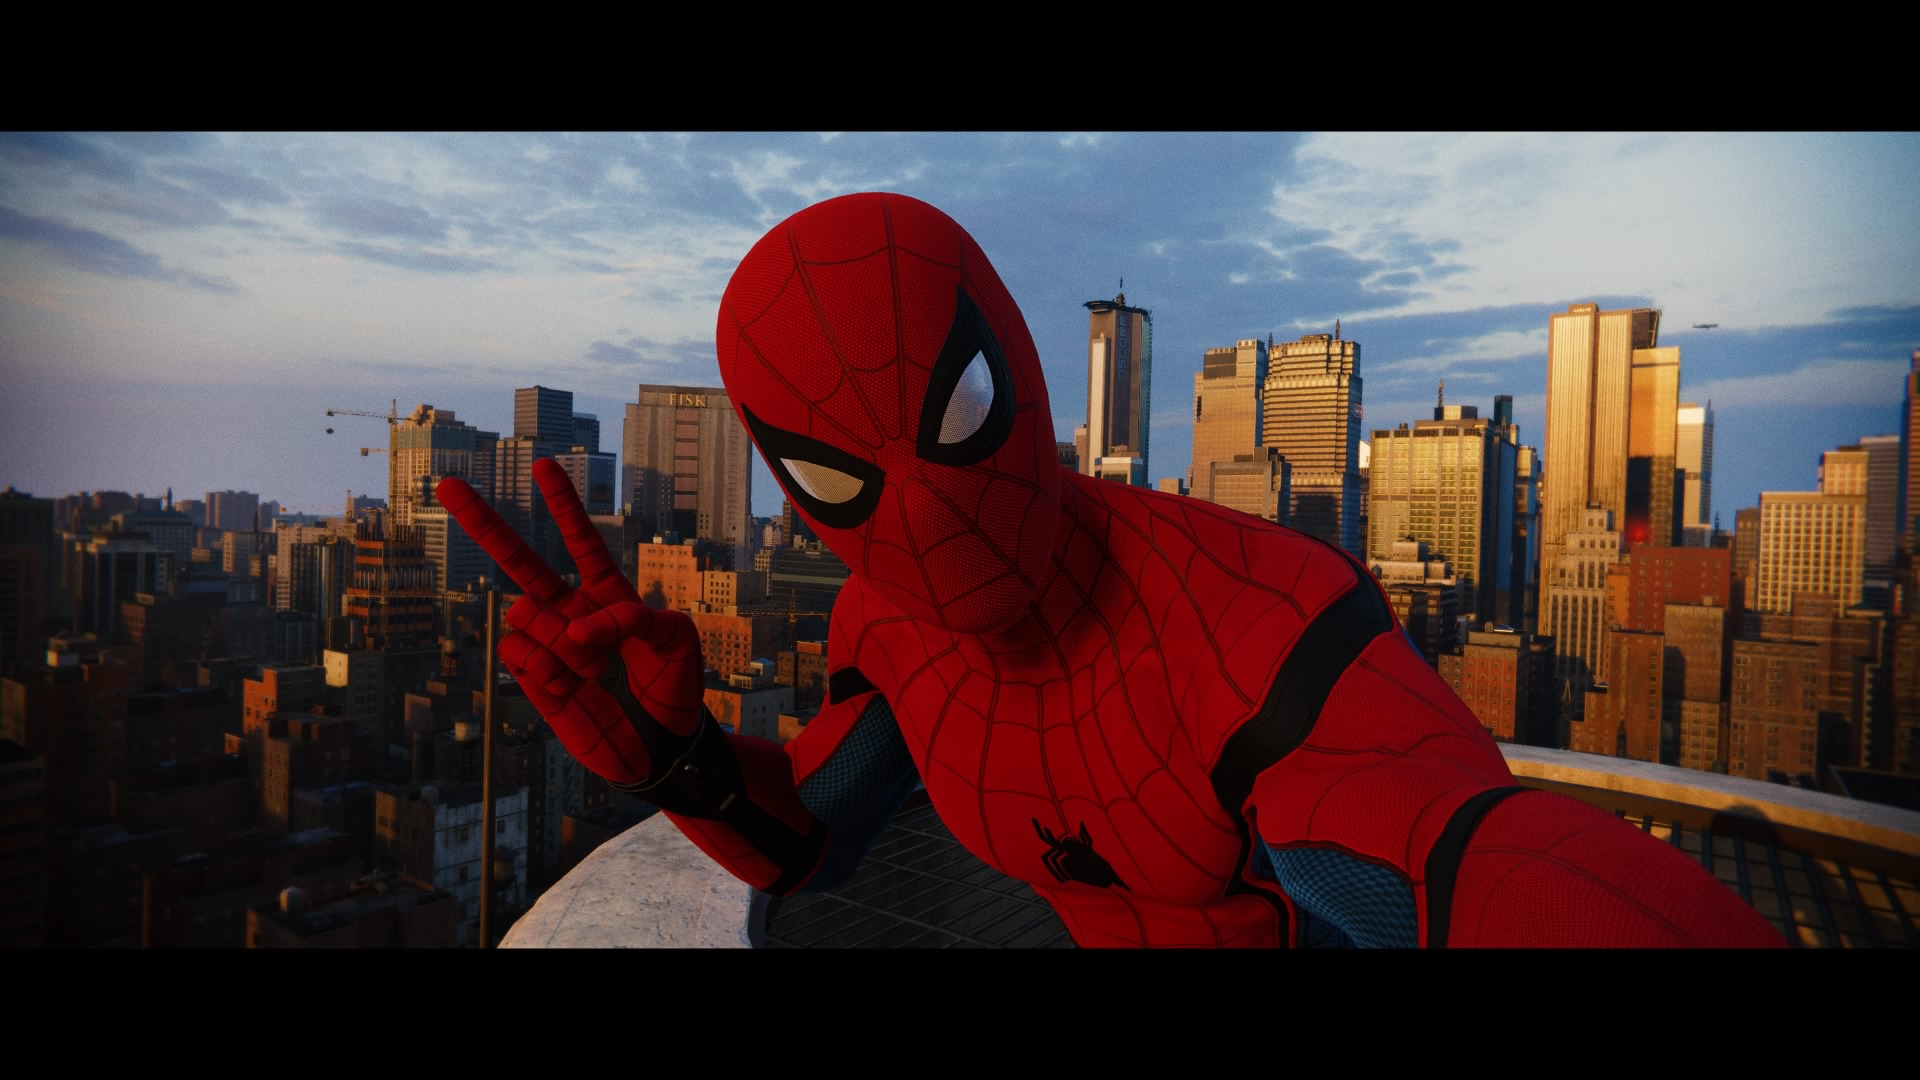 Spider Man Ps4 Spidey Selfie By Thebmz On Deviantart